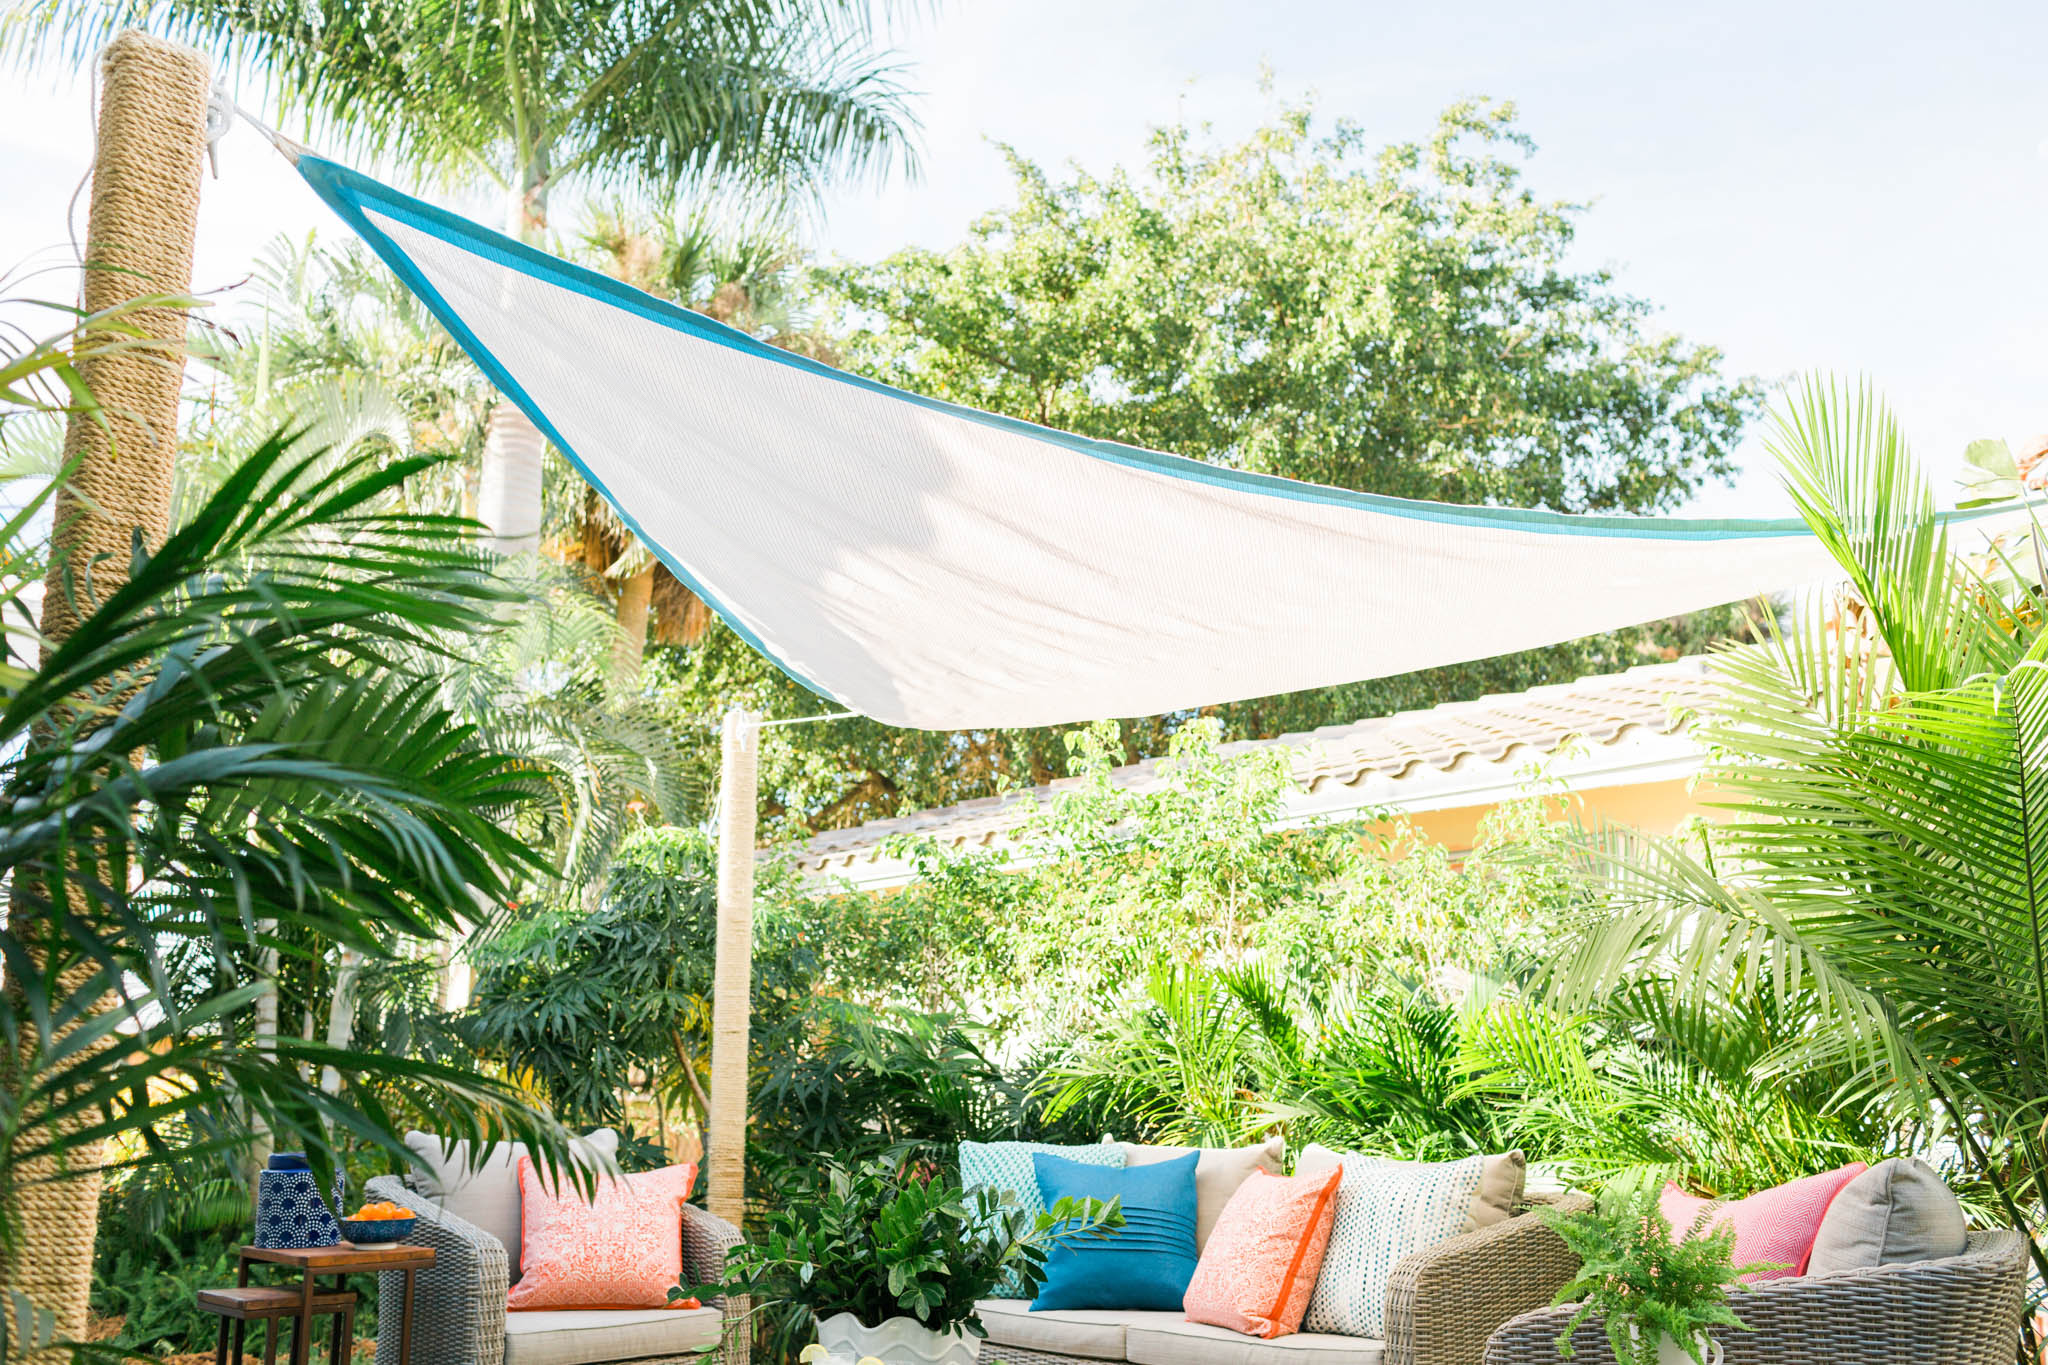 Project Ideas For Bringing Shade To Outdoor Spaces Apartment Therapy